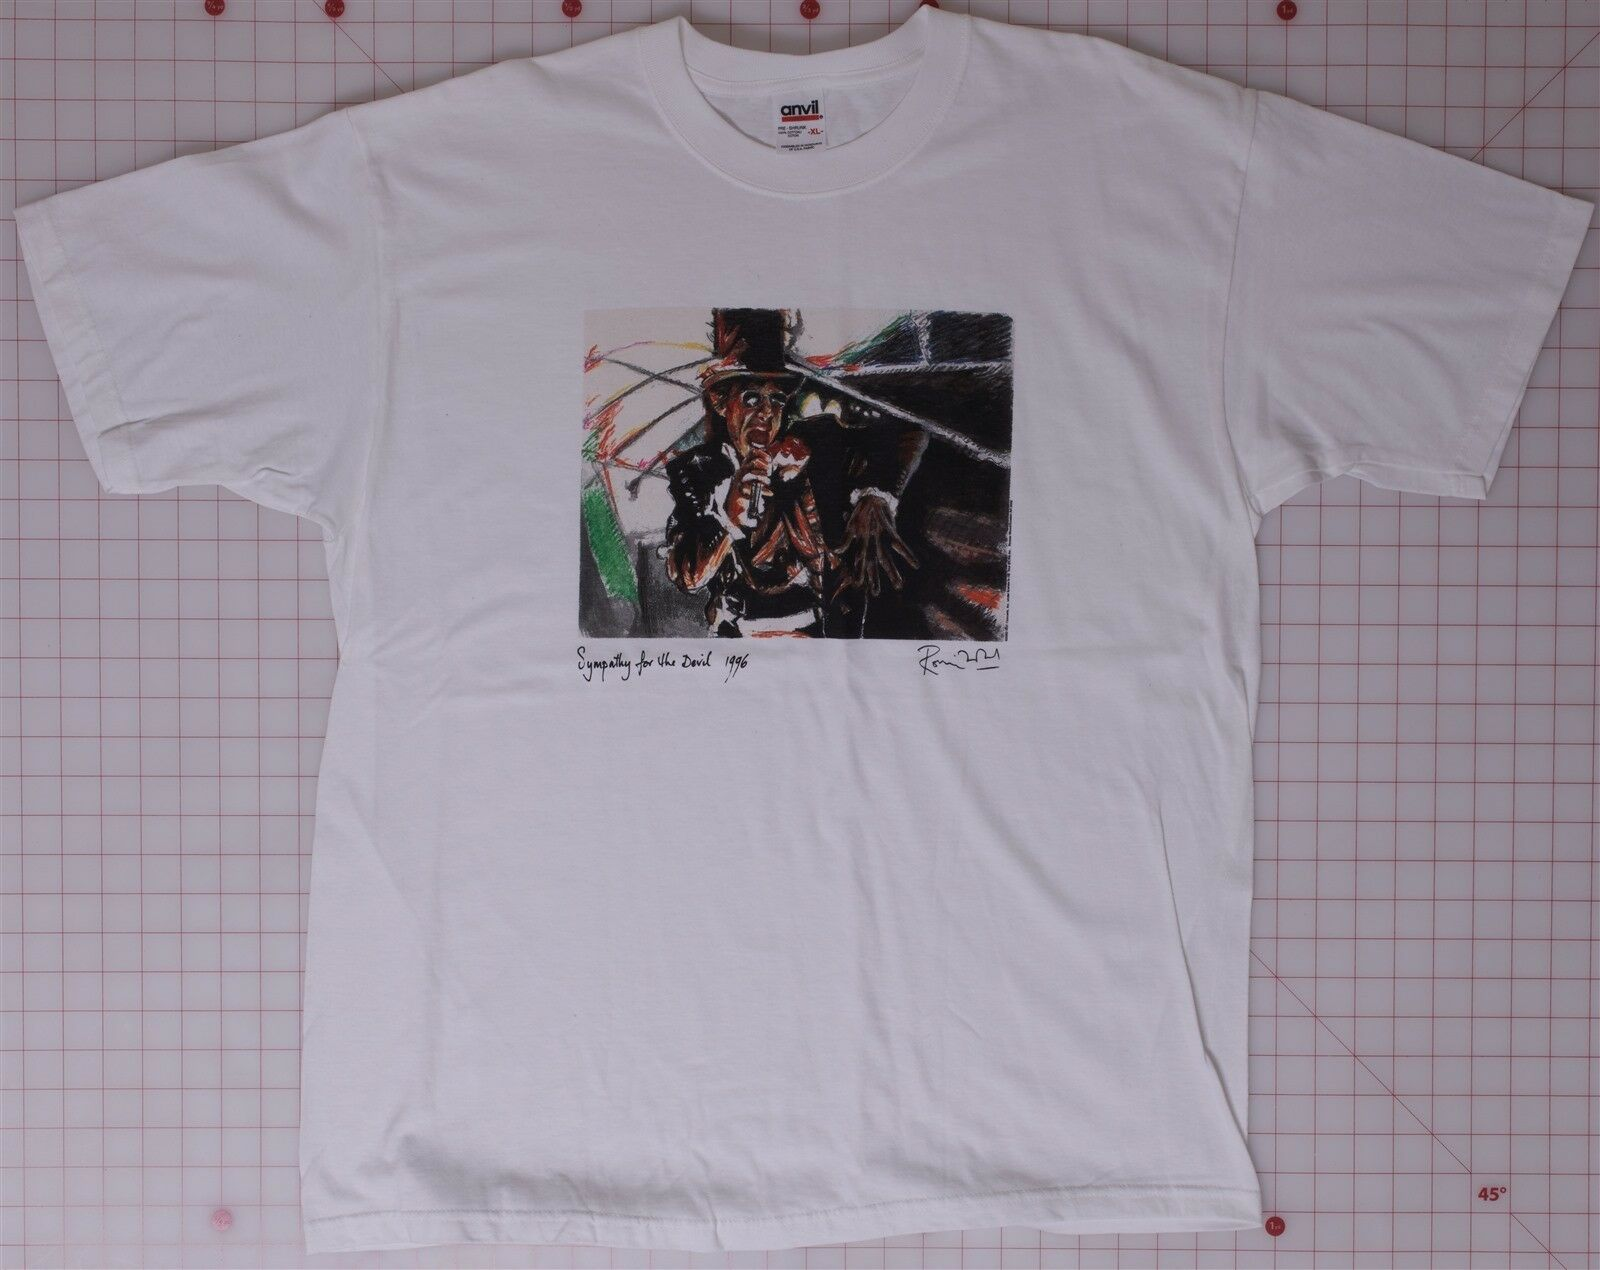 Rolling Stones Rare Symphony for the Devil Ron Wood Graphics XL Weiß T-hemd